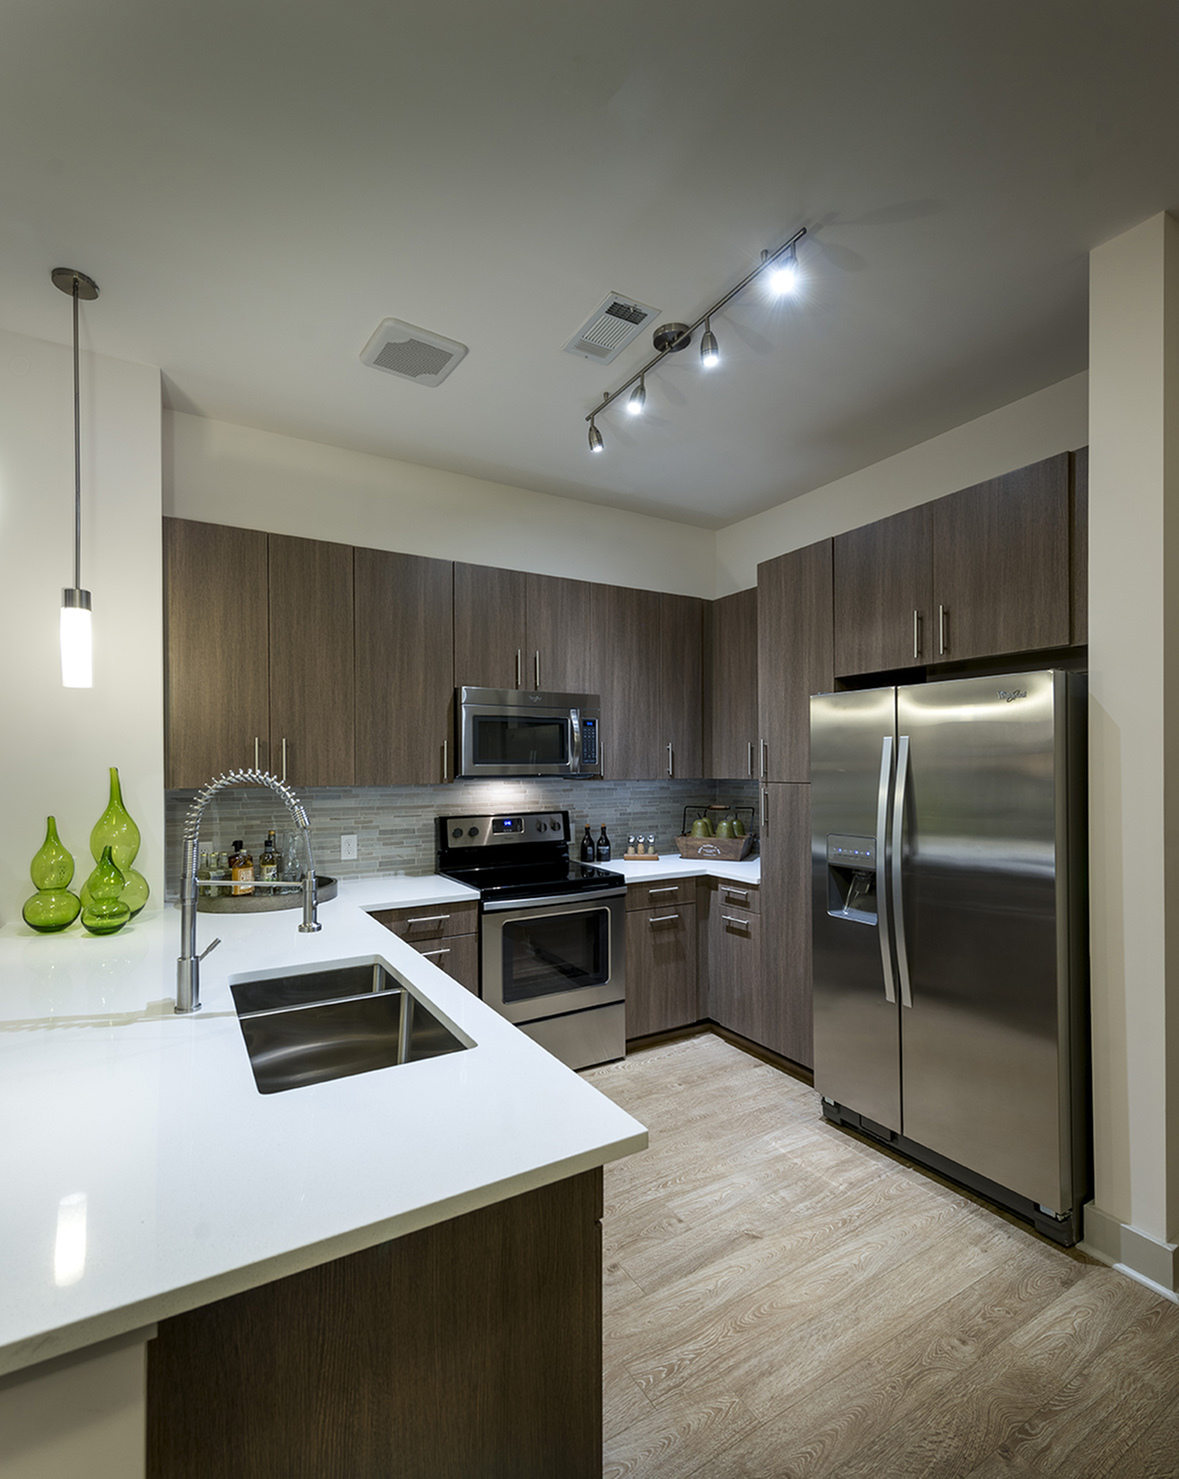 Image of Premium Granite and Quartz Countertops for Hanover Alewife